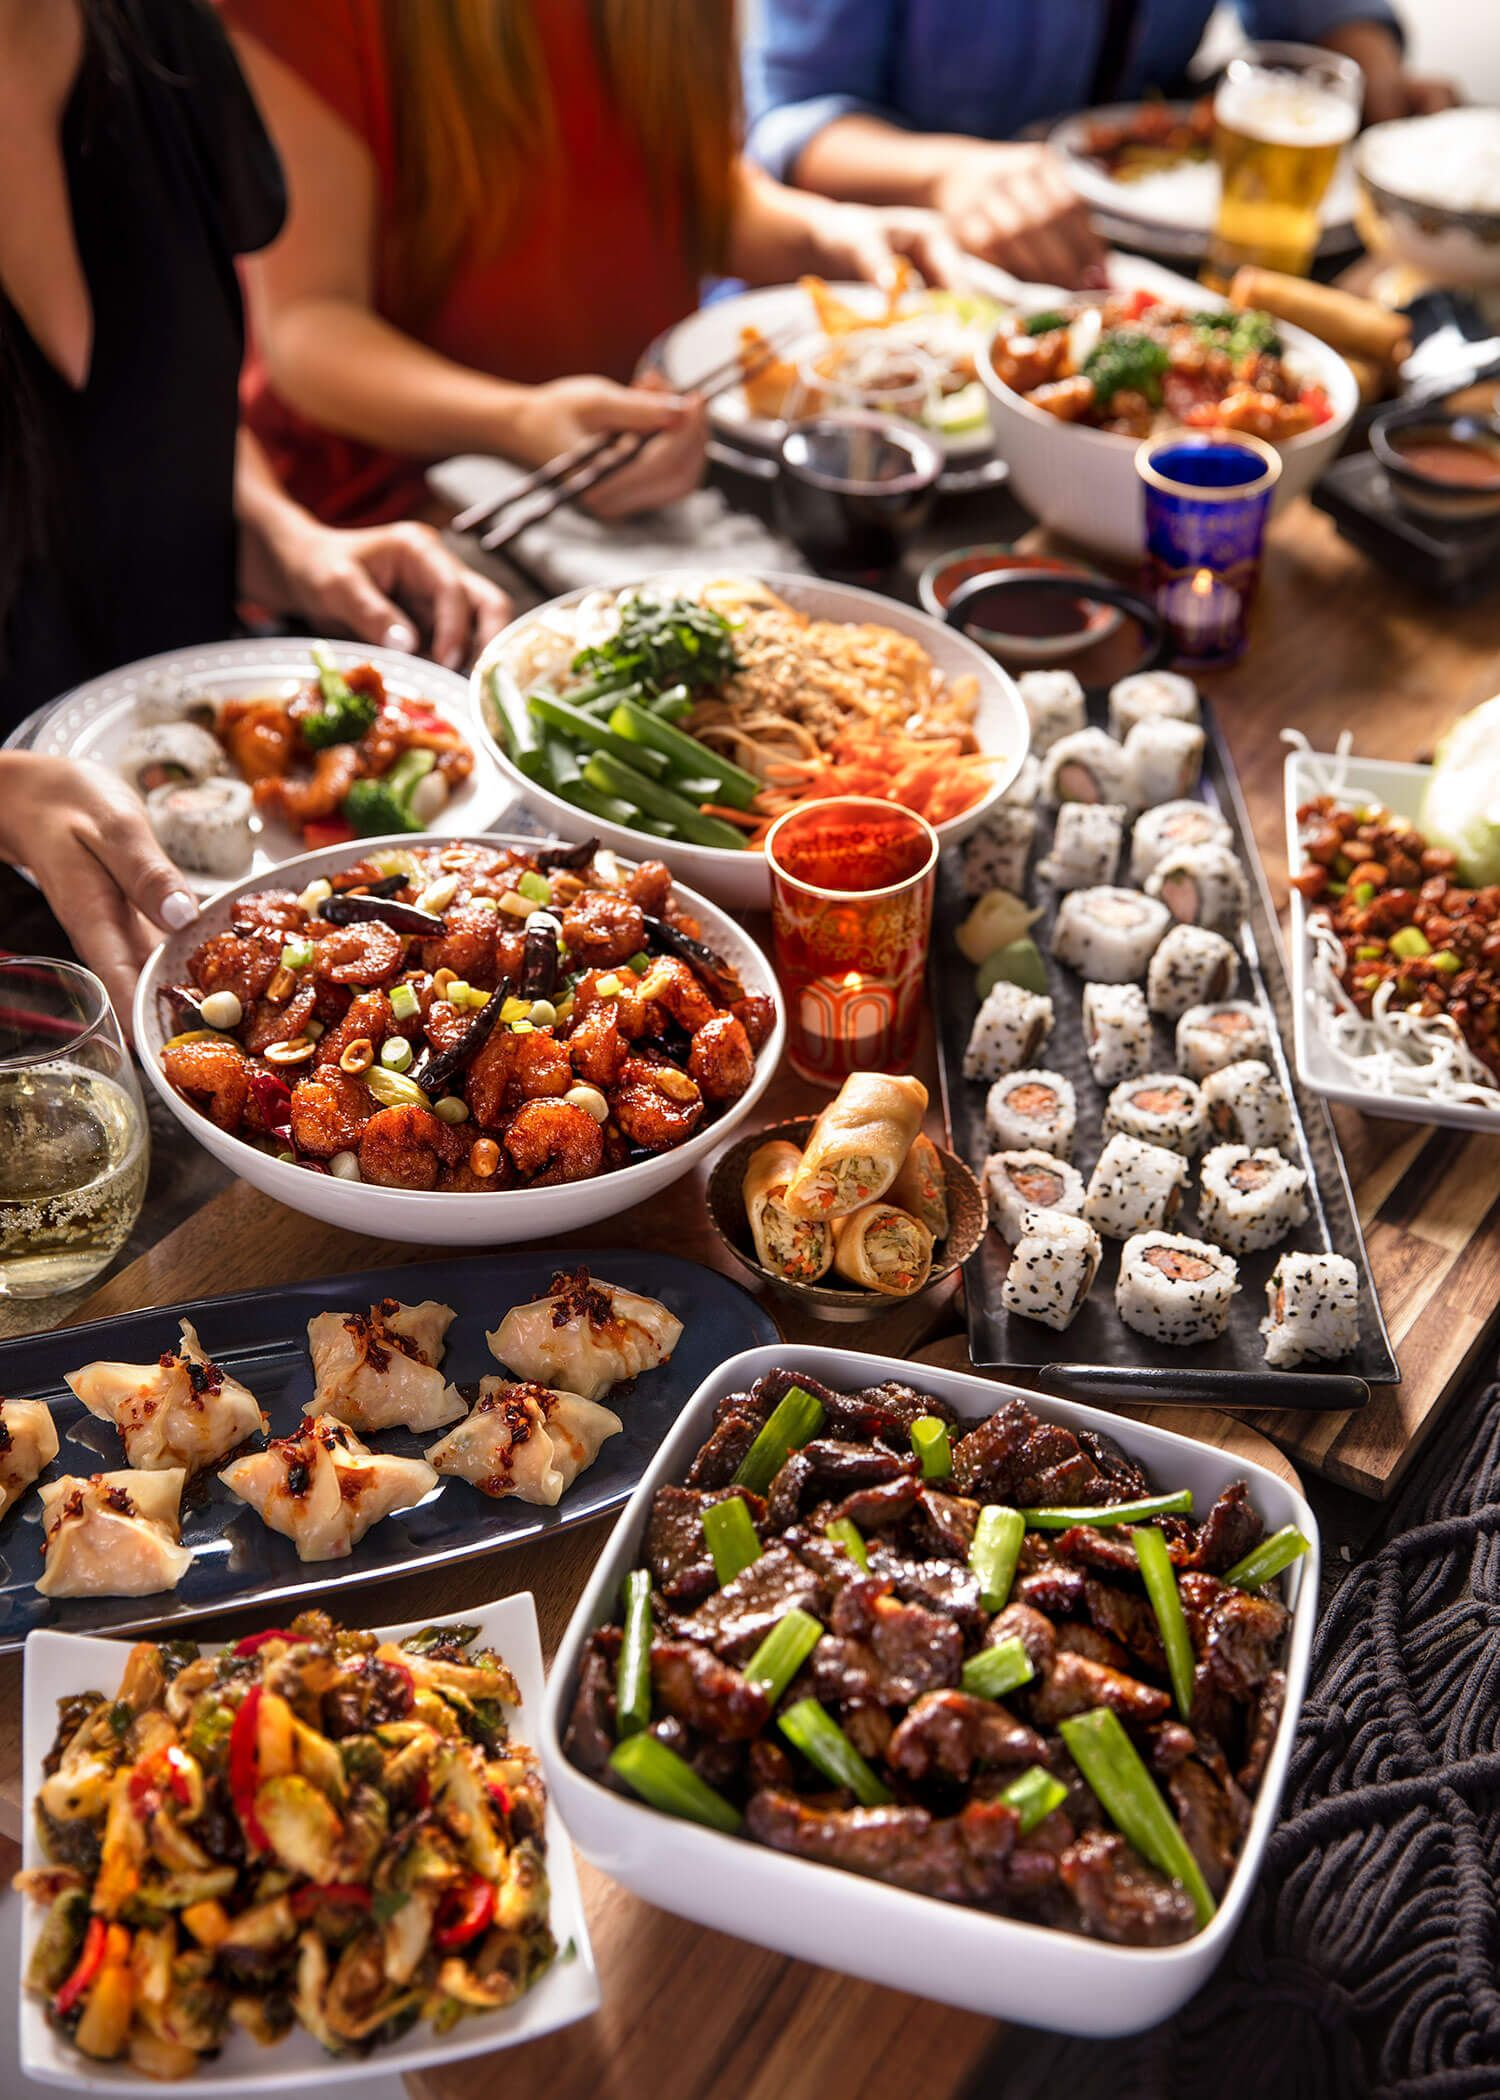 Hosting The Perfect Dinner Party Perfect Dinner Party Party Food Menu Chinese Food Catering